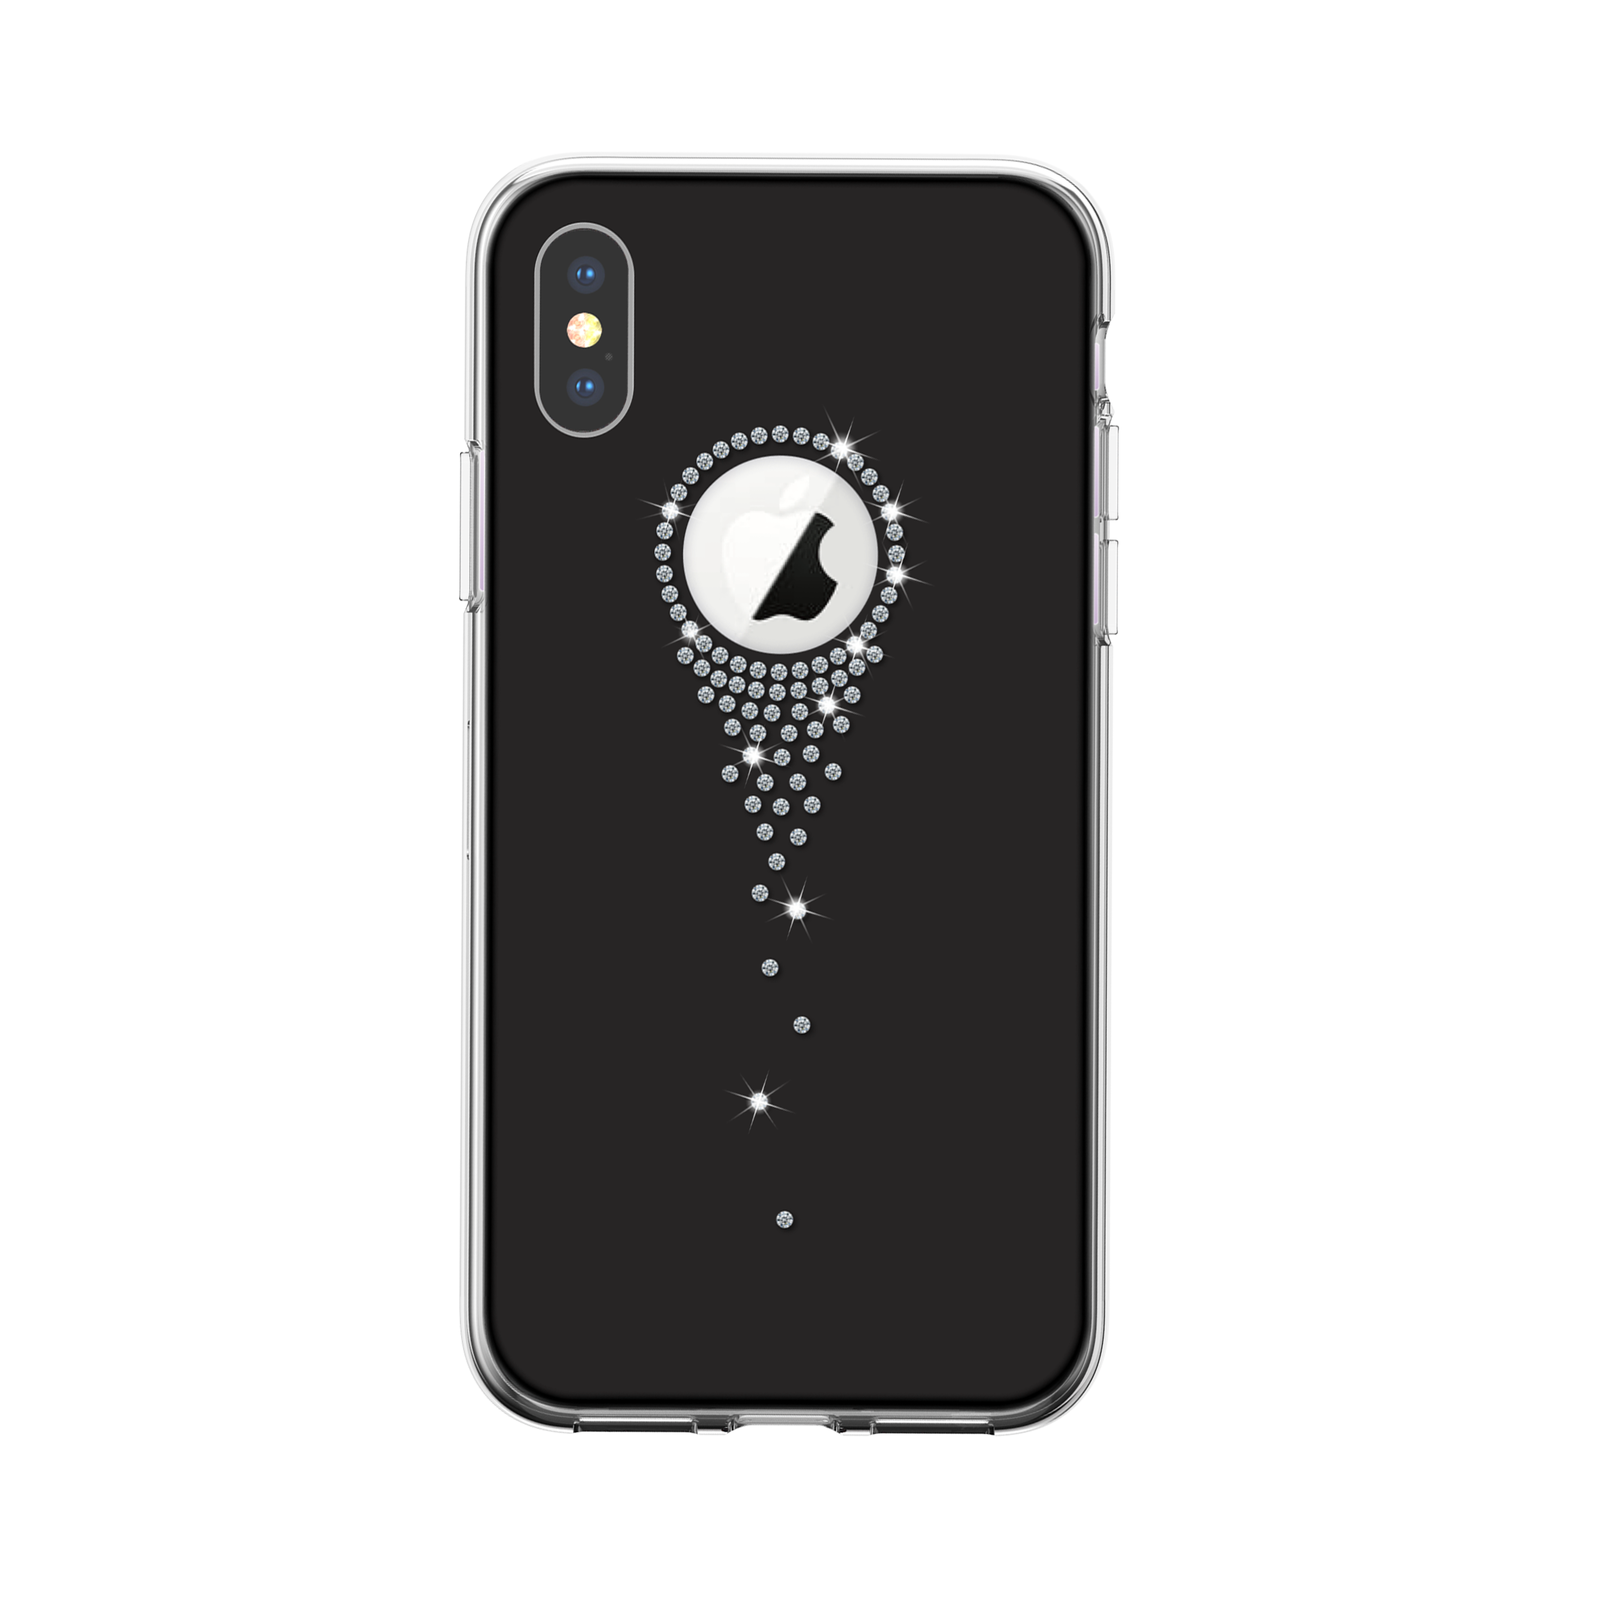 iPhone-XS-Max-XR-XS-X-Case-Genuine-DEVIA-Bling-Diamond-Ultra-Hybrid-Case-Cover thumbnail 23